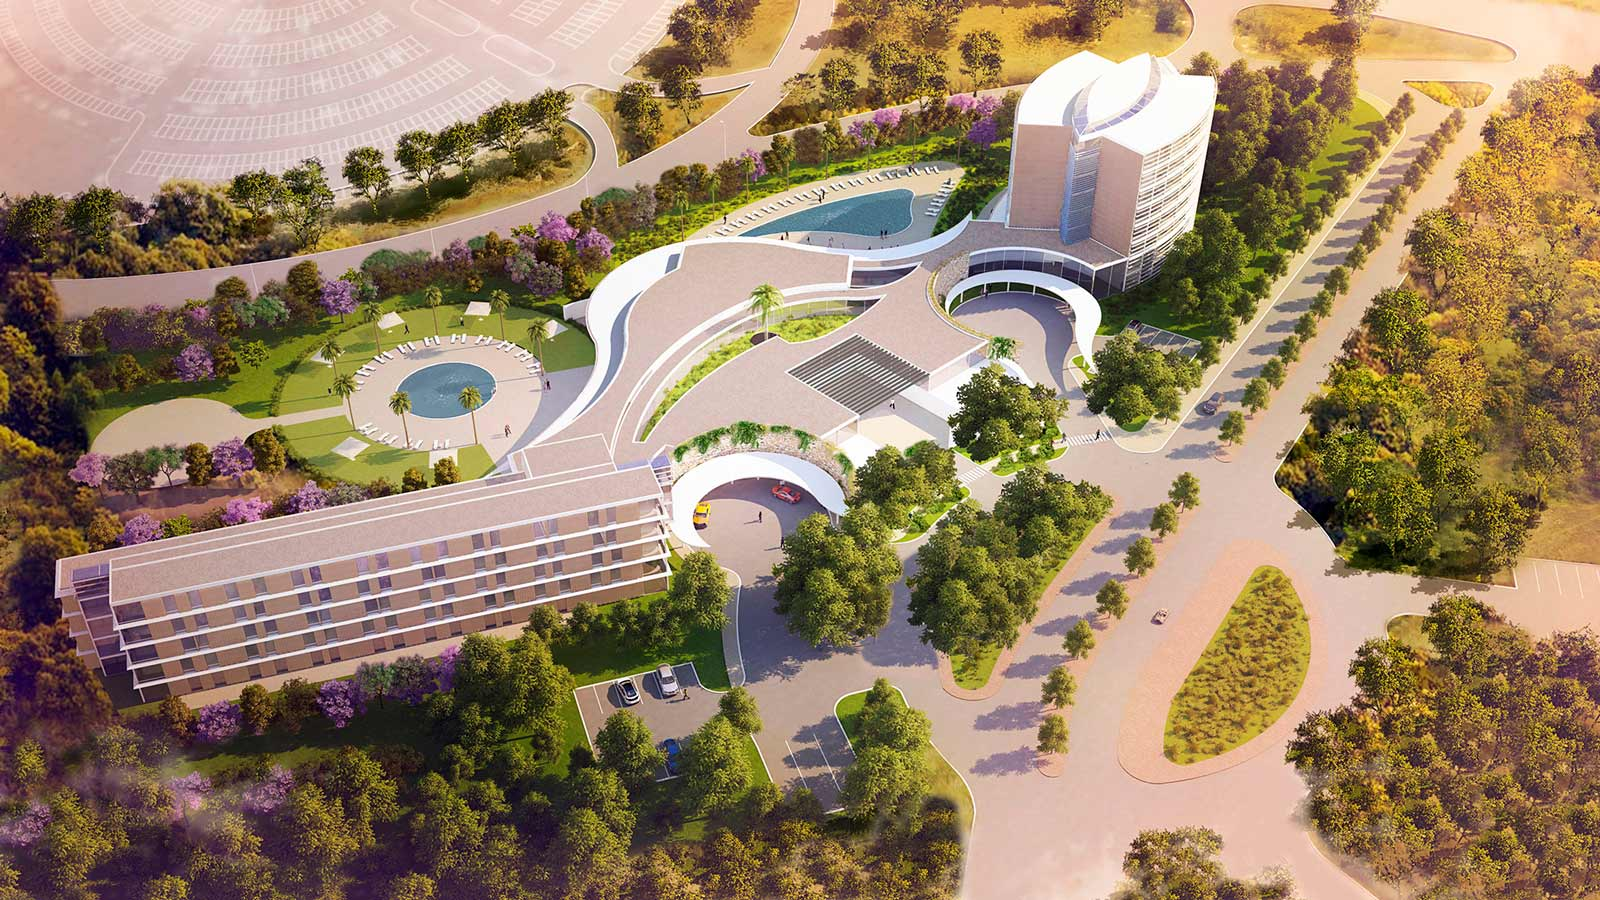 perspective-concours-dl2a-complexe-hotelier-casablanca